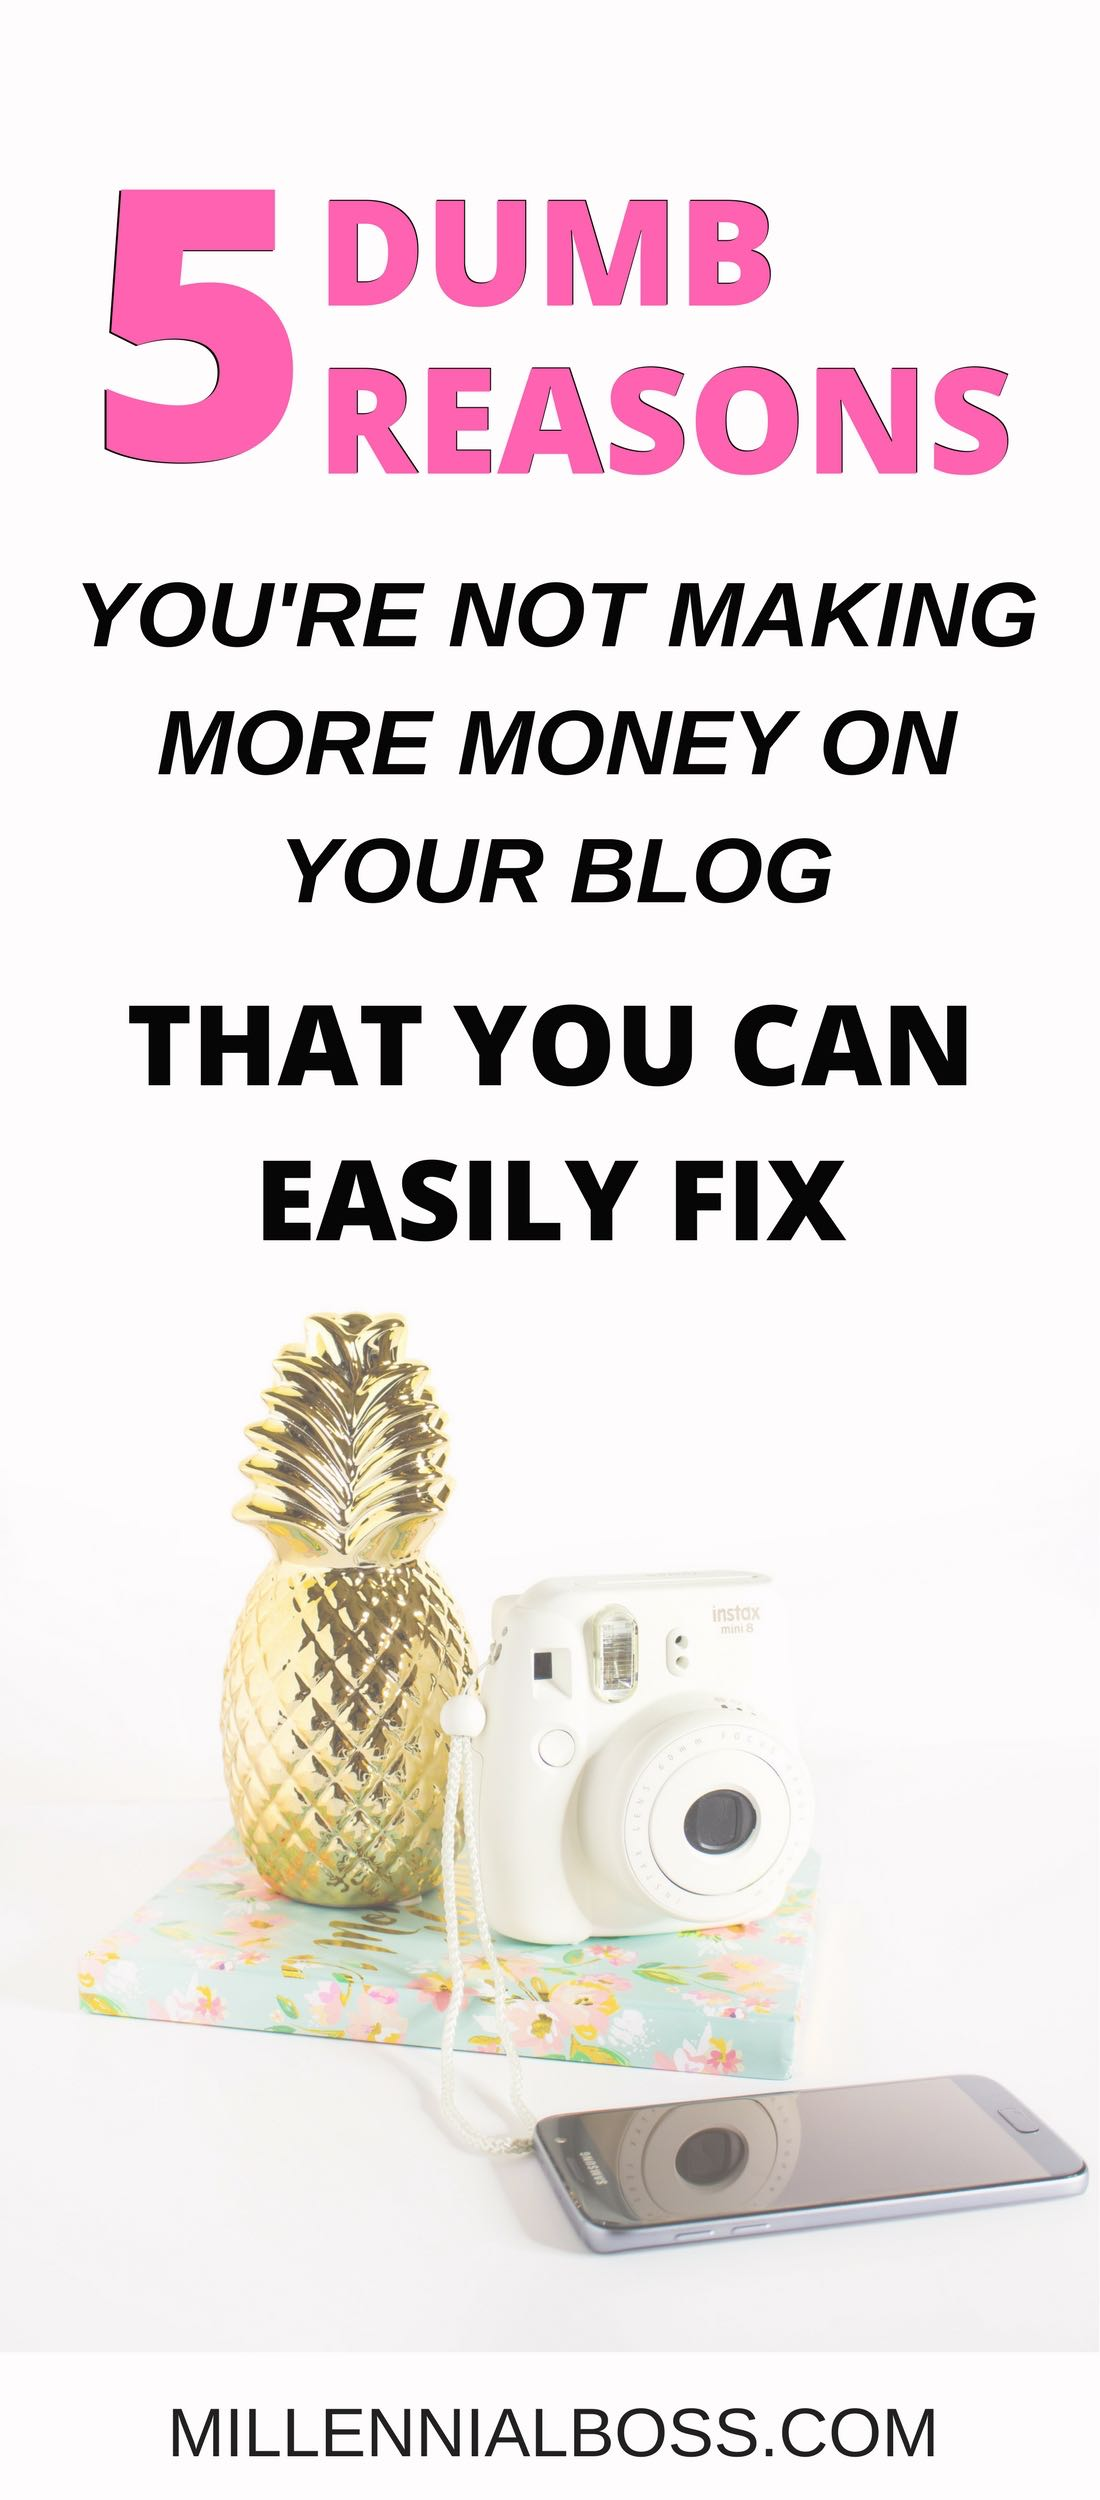 I wish I knew how to make my blog make money earlier! It feels like affiliate marketing is not working despite my efforts. This is probably why.